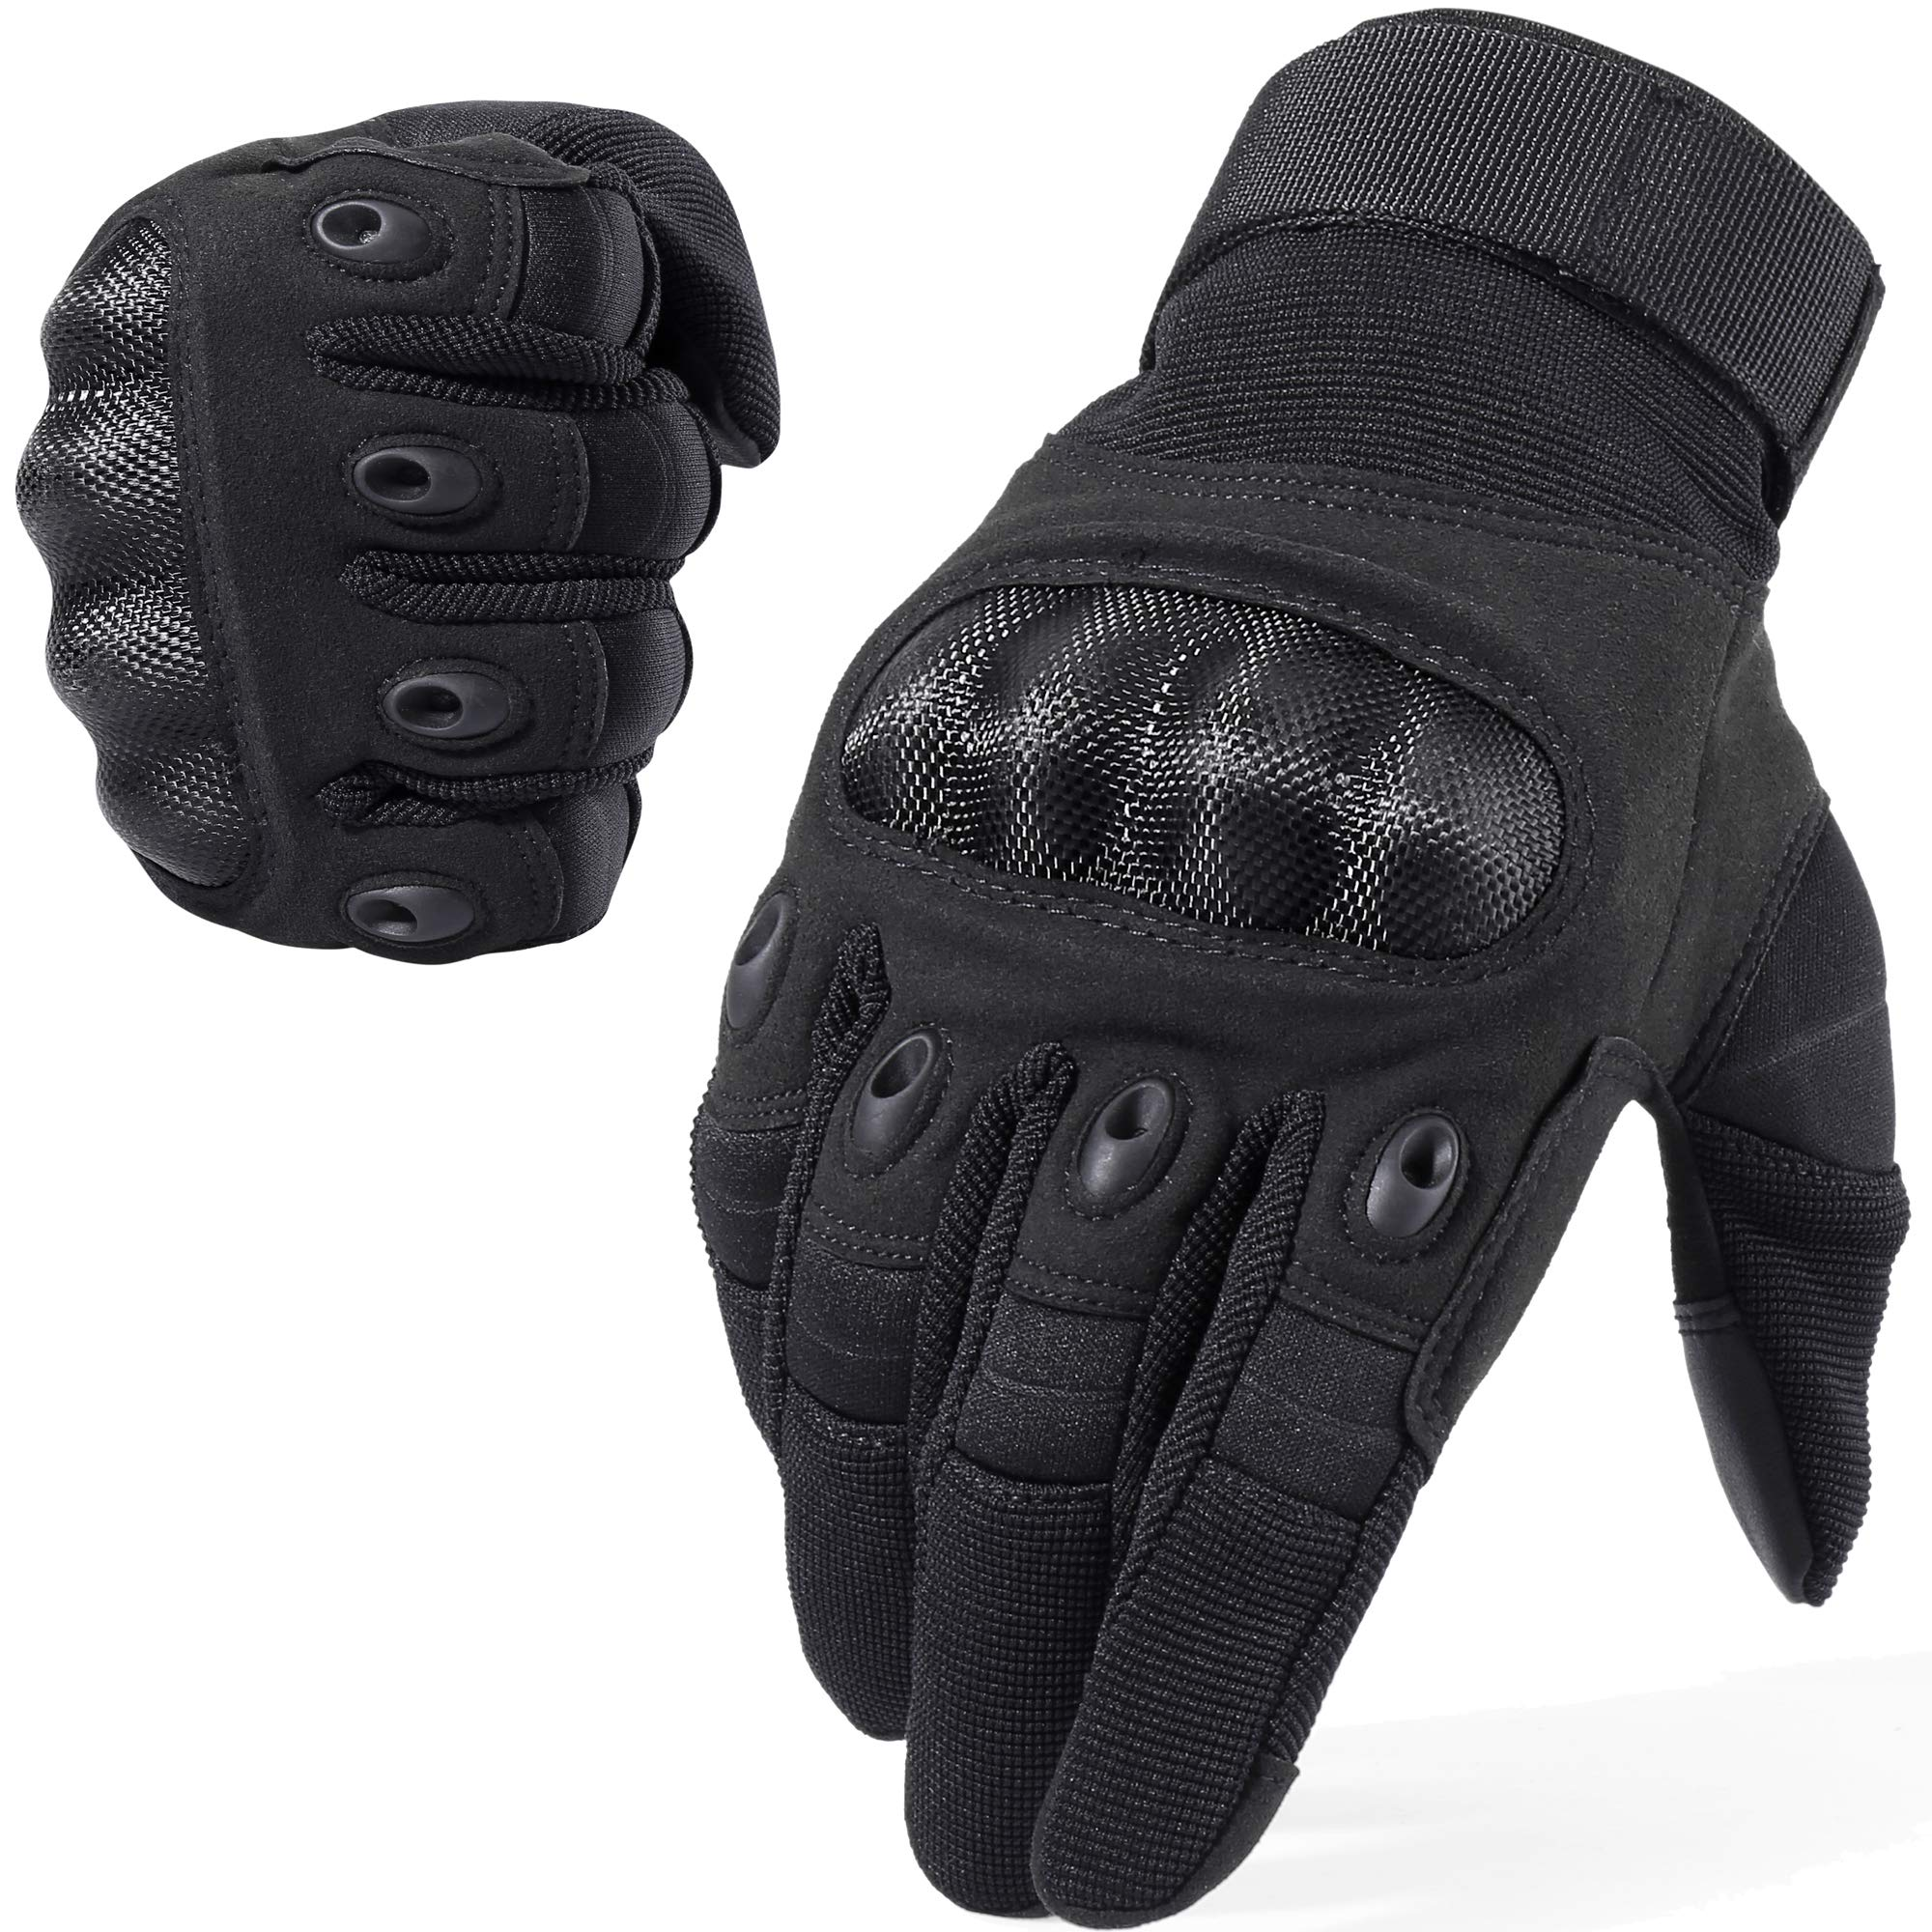 WTACTFUL Touch Screen Motorcycle Full Finger Gloves for Cycling Motorbike ATV Hunting Hiking Riding Climbing Operating Work Sports Gloves